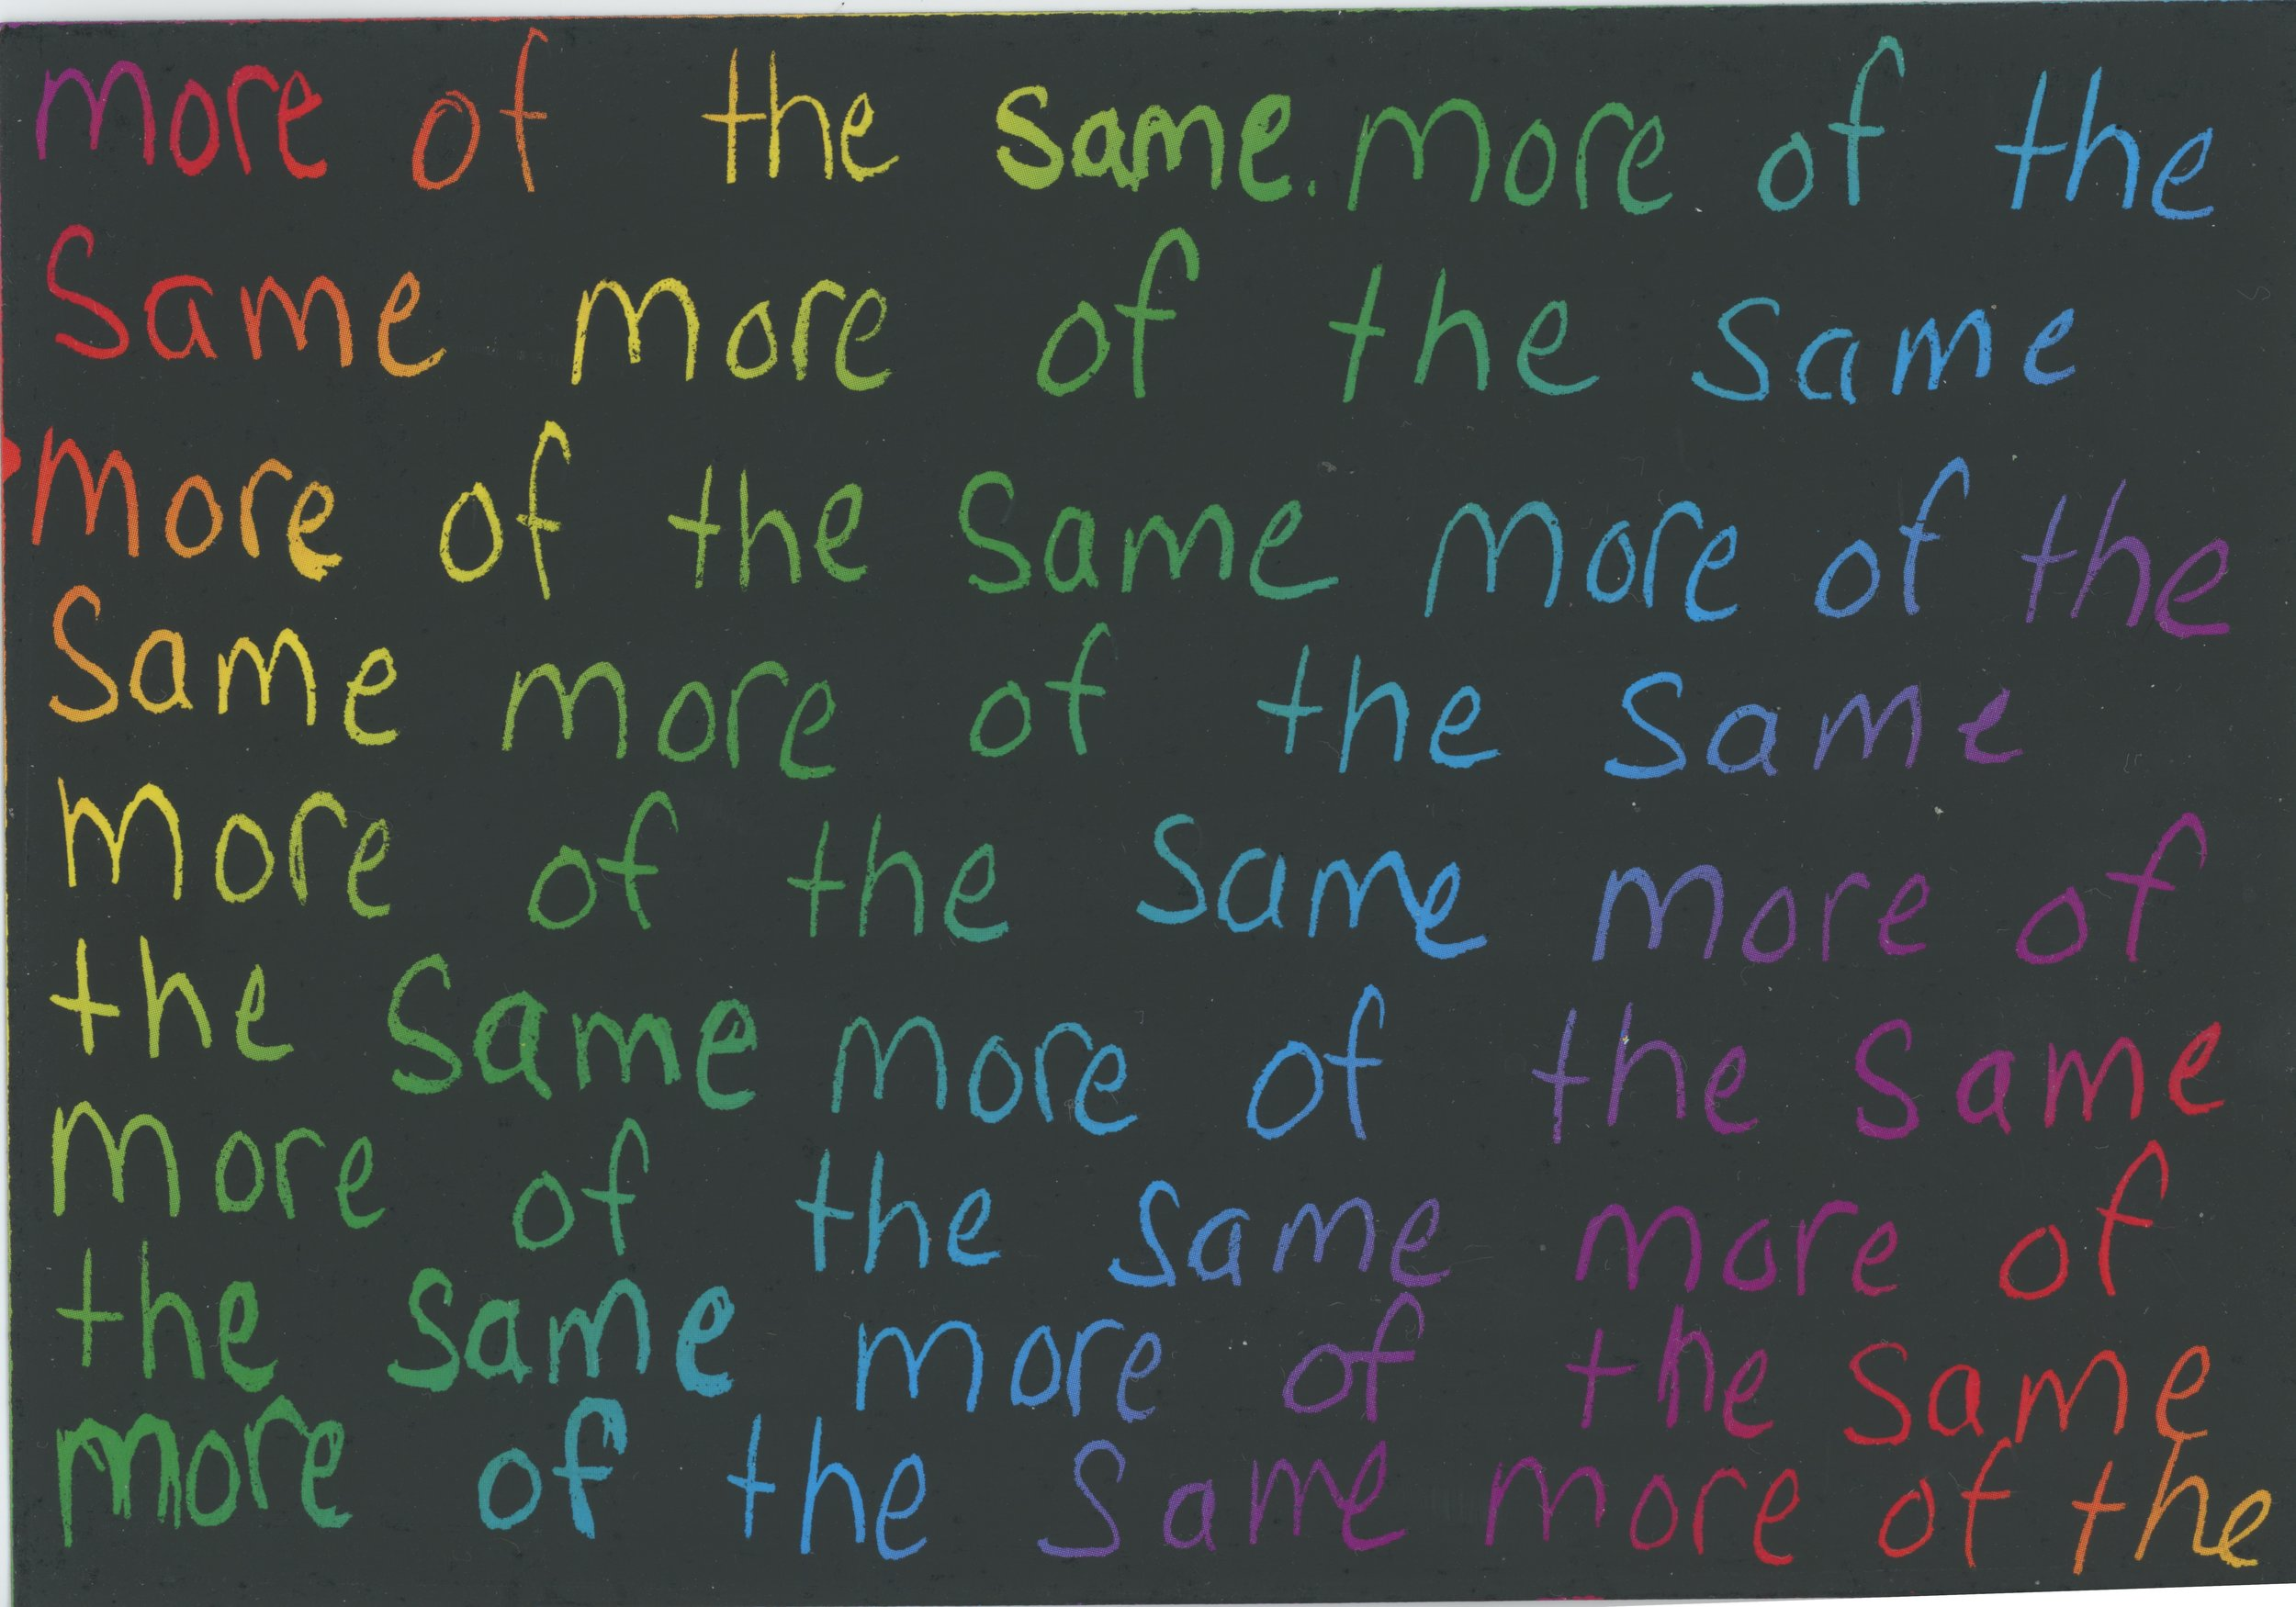 more of the same -